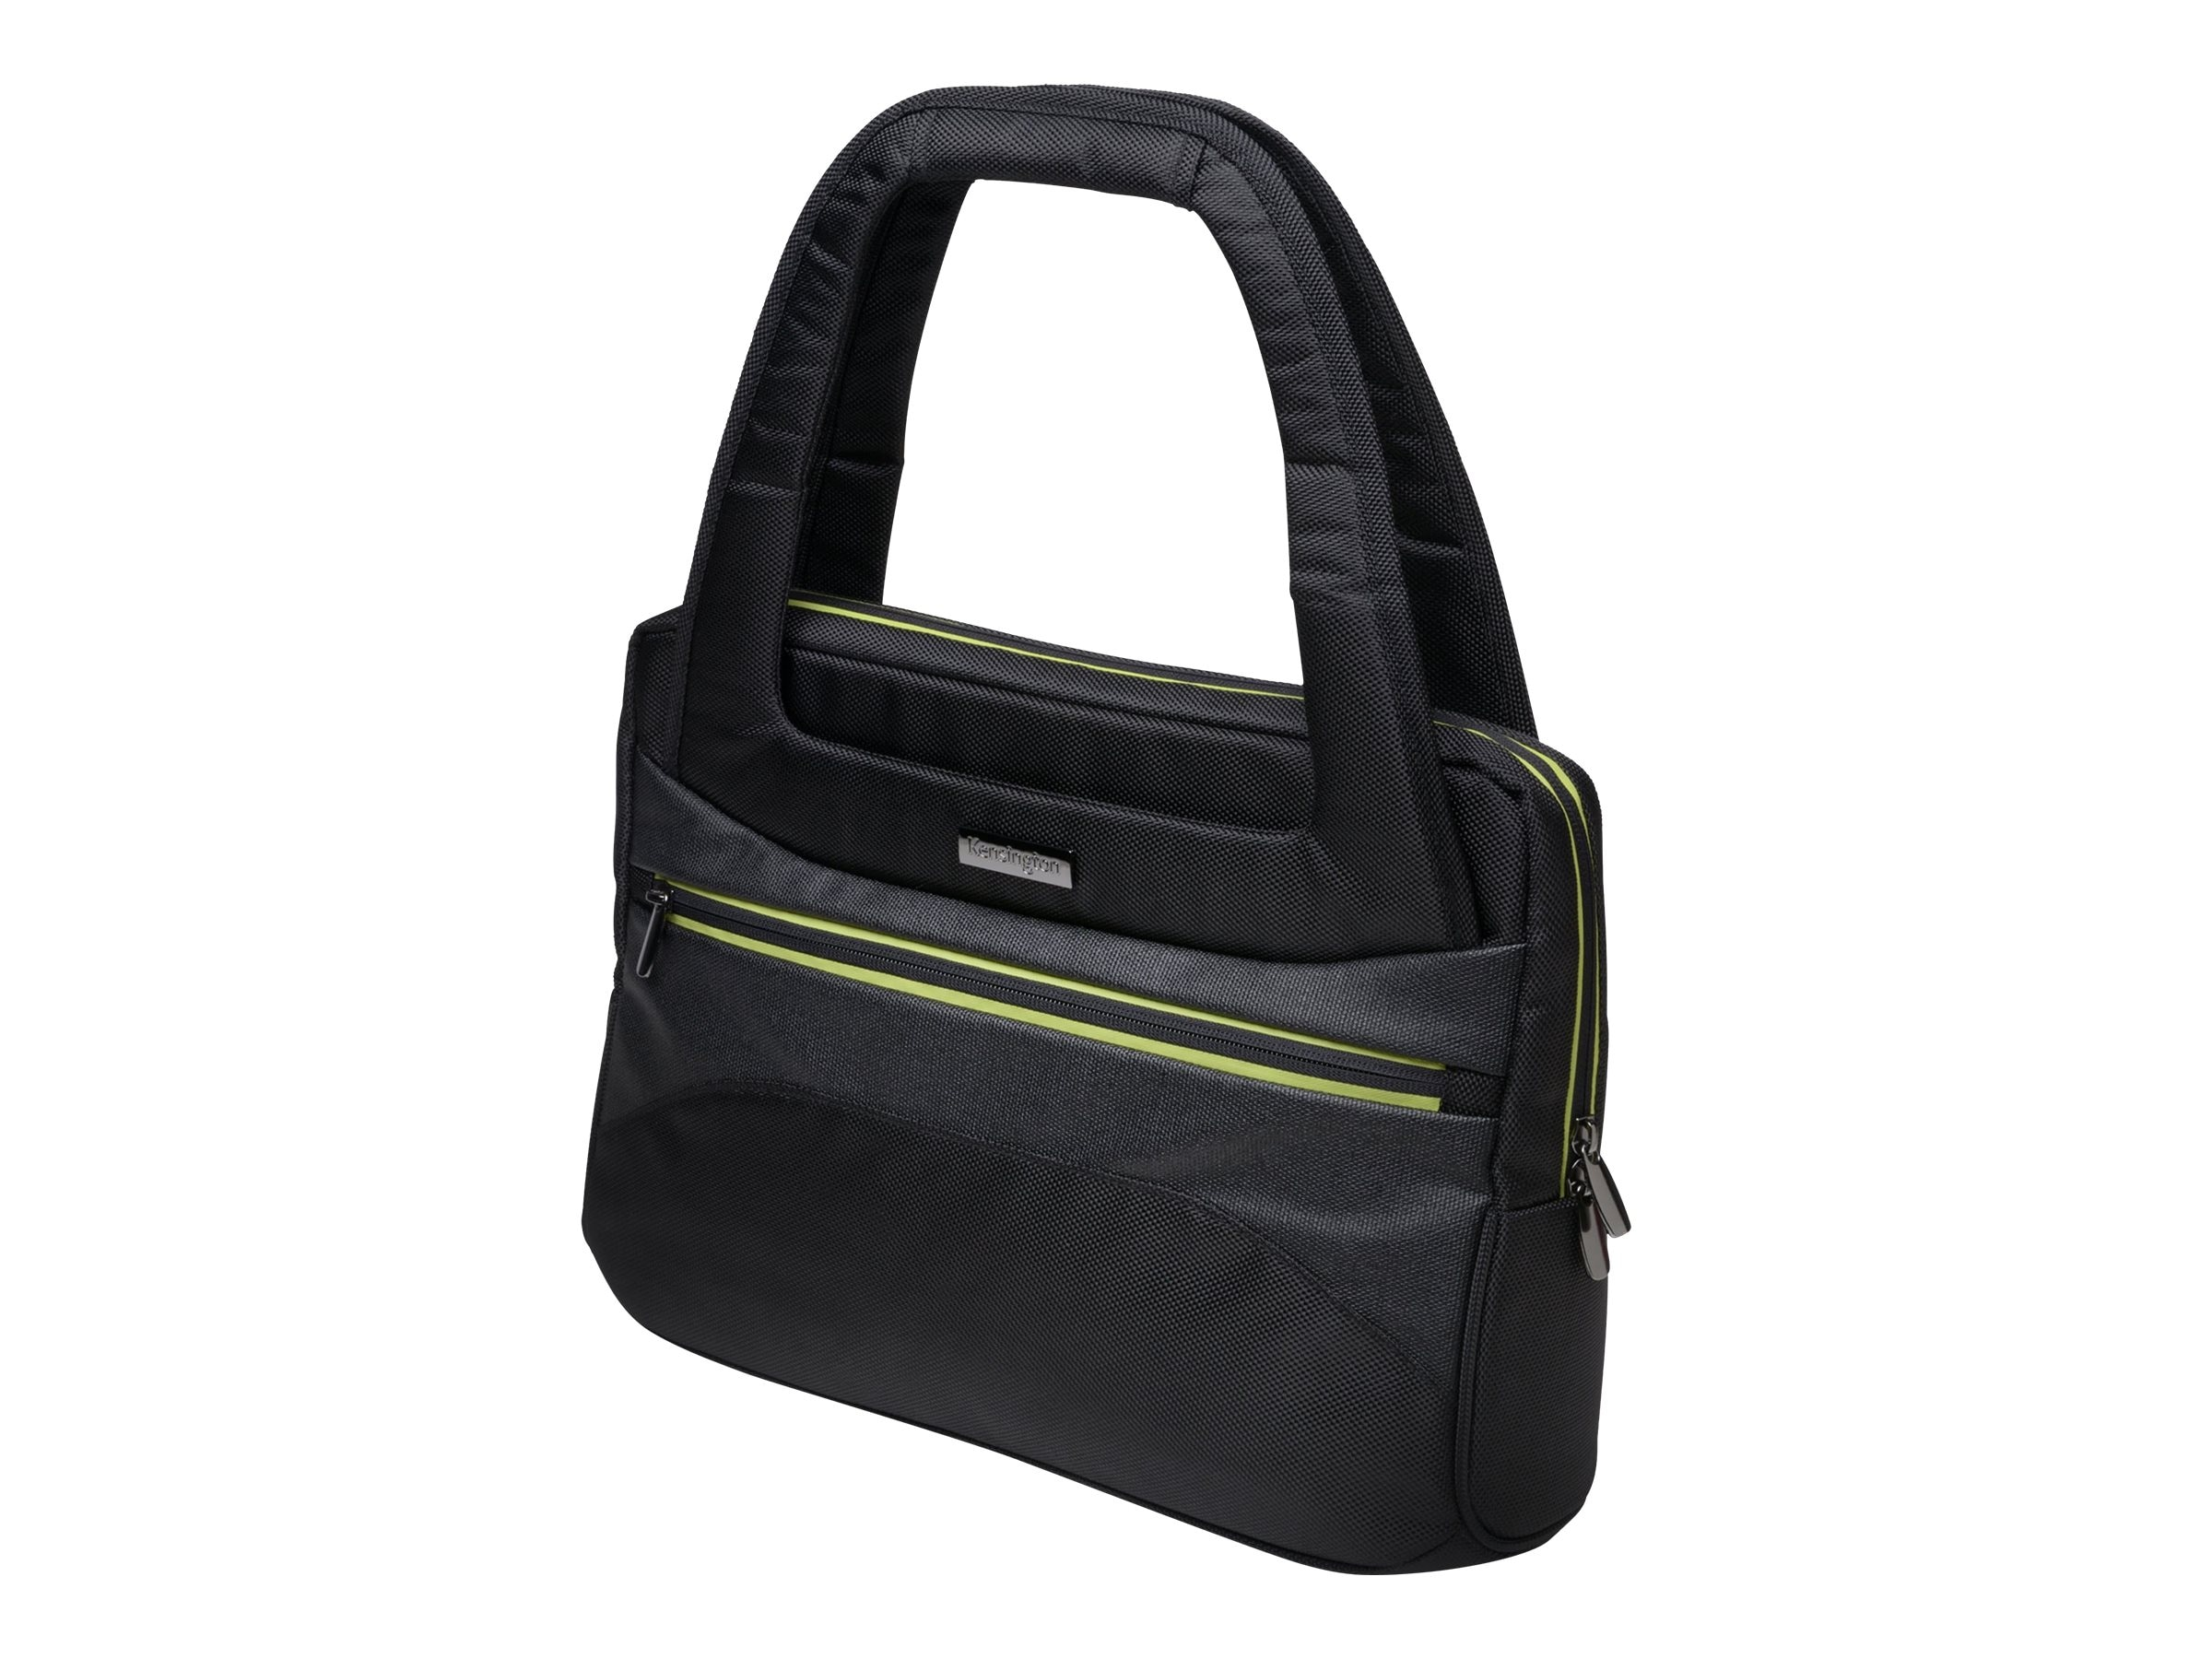 Kensington Triple Trek Ladies Tote for 13 to 14 Ultrabook, Black Green